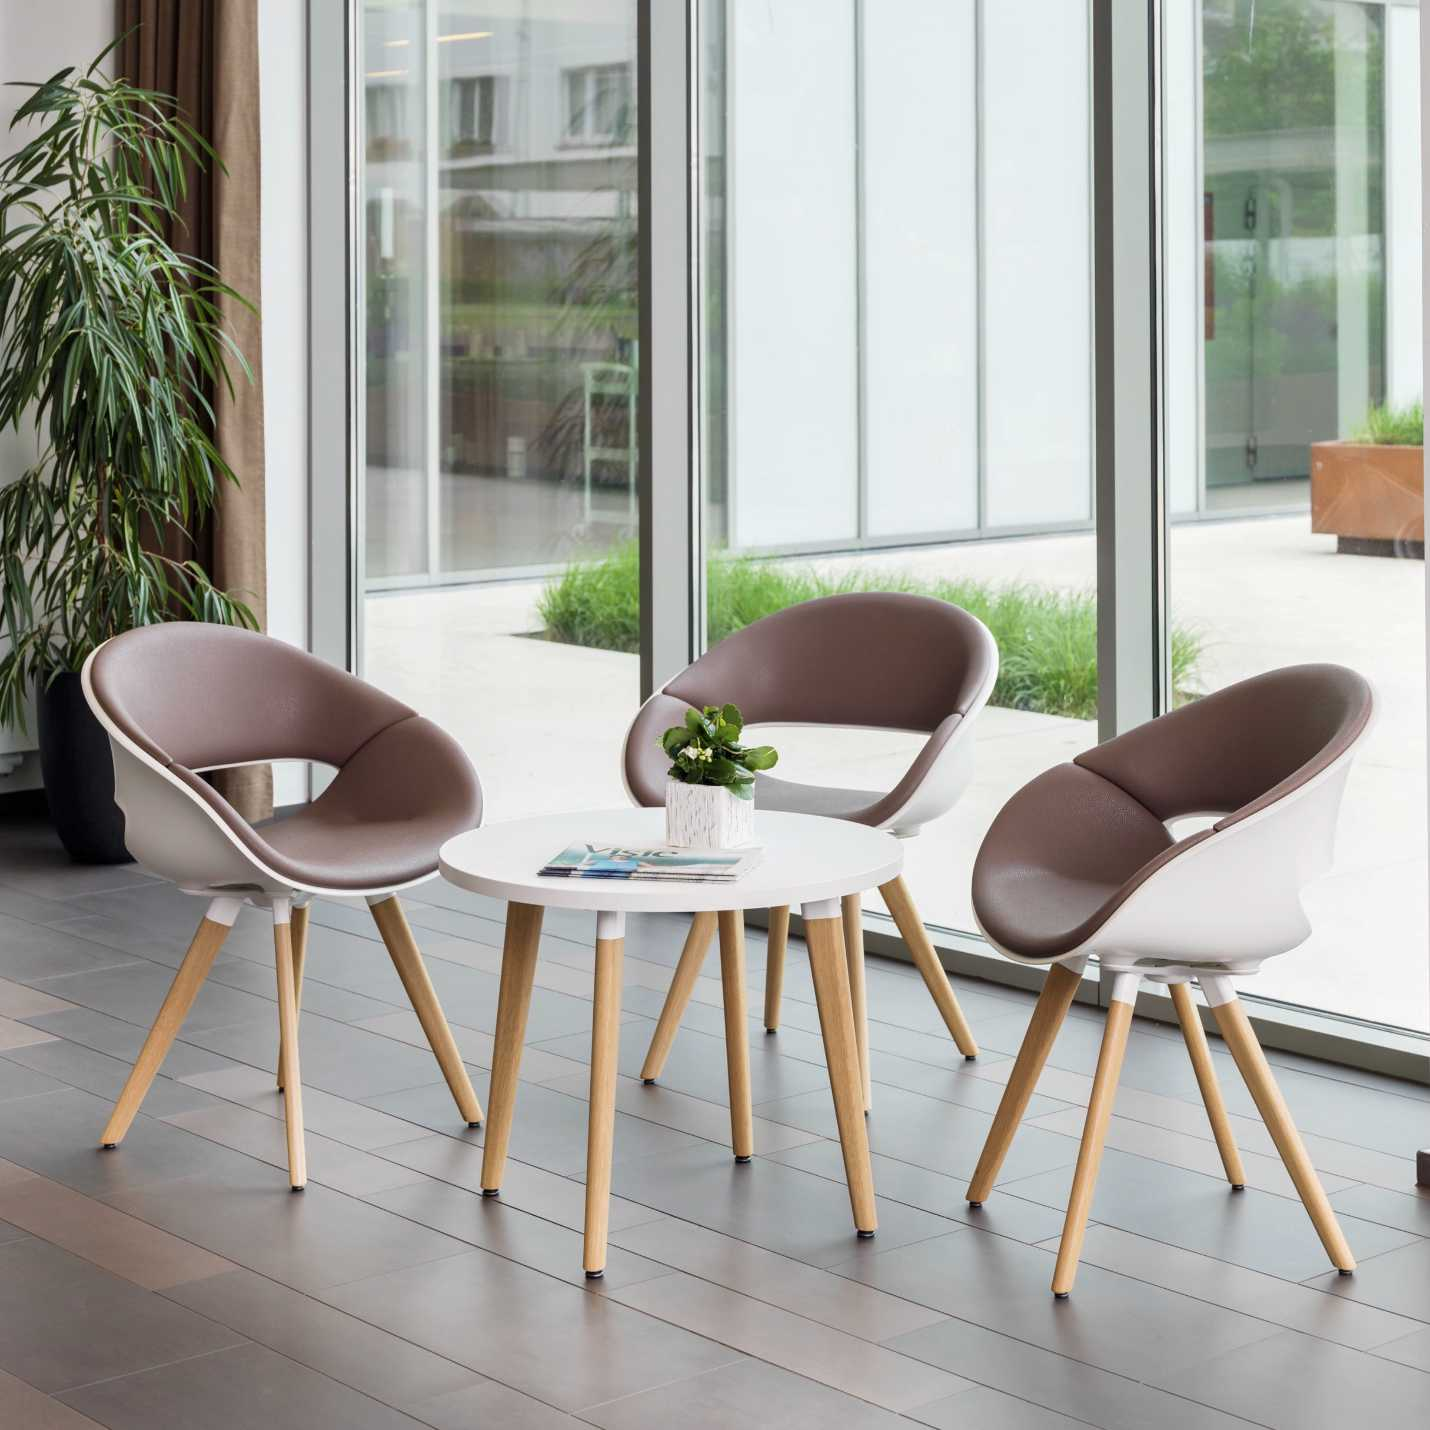 Volpino 8240 Chair (Seating)